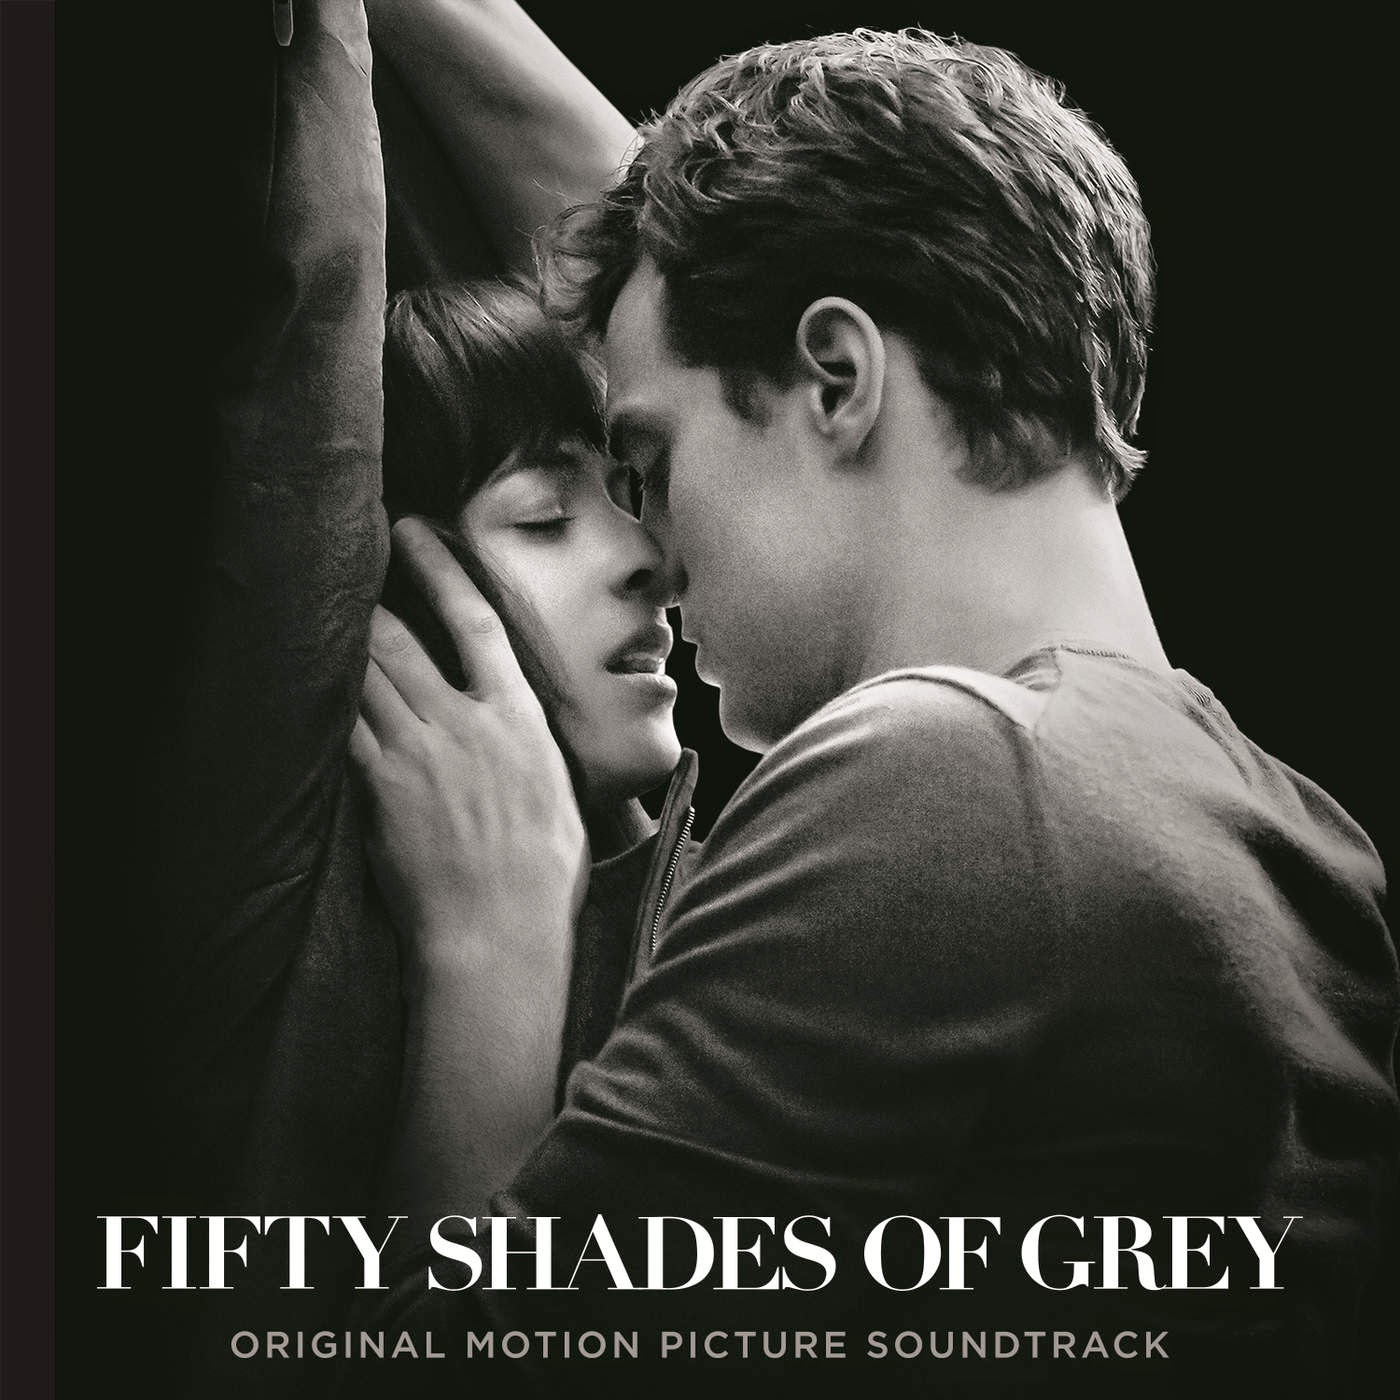 Various Artists - Fifty Shades of Grey (Original Motion Picture Soundtrack) - Pre-Order Singles